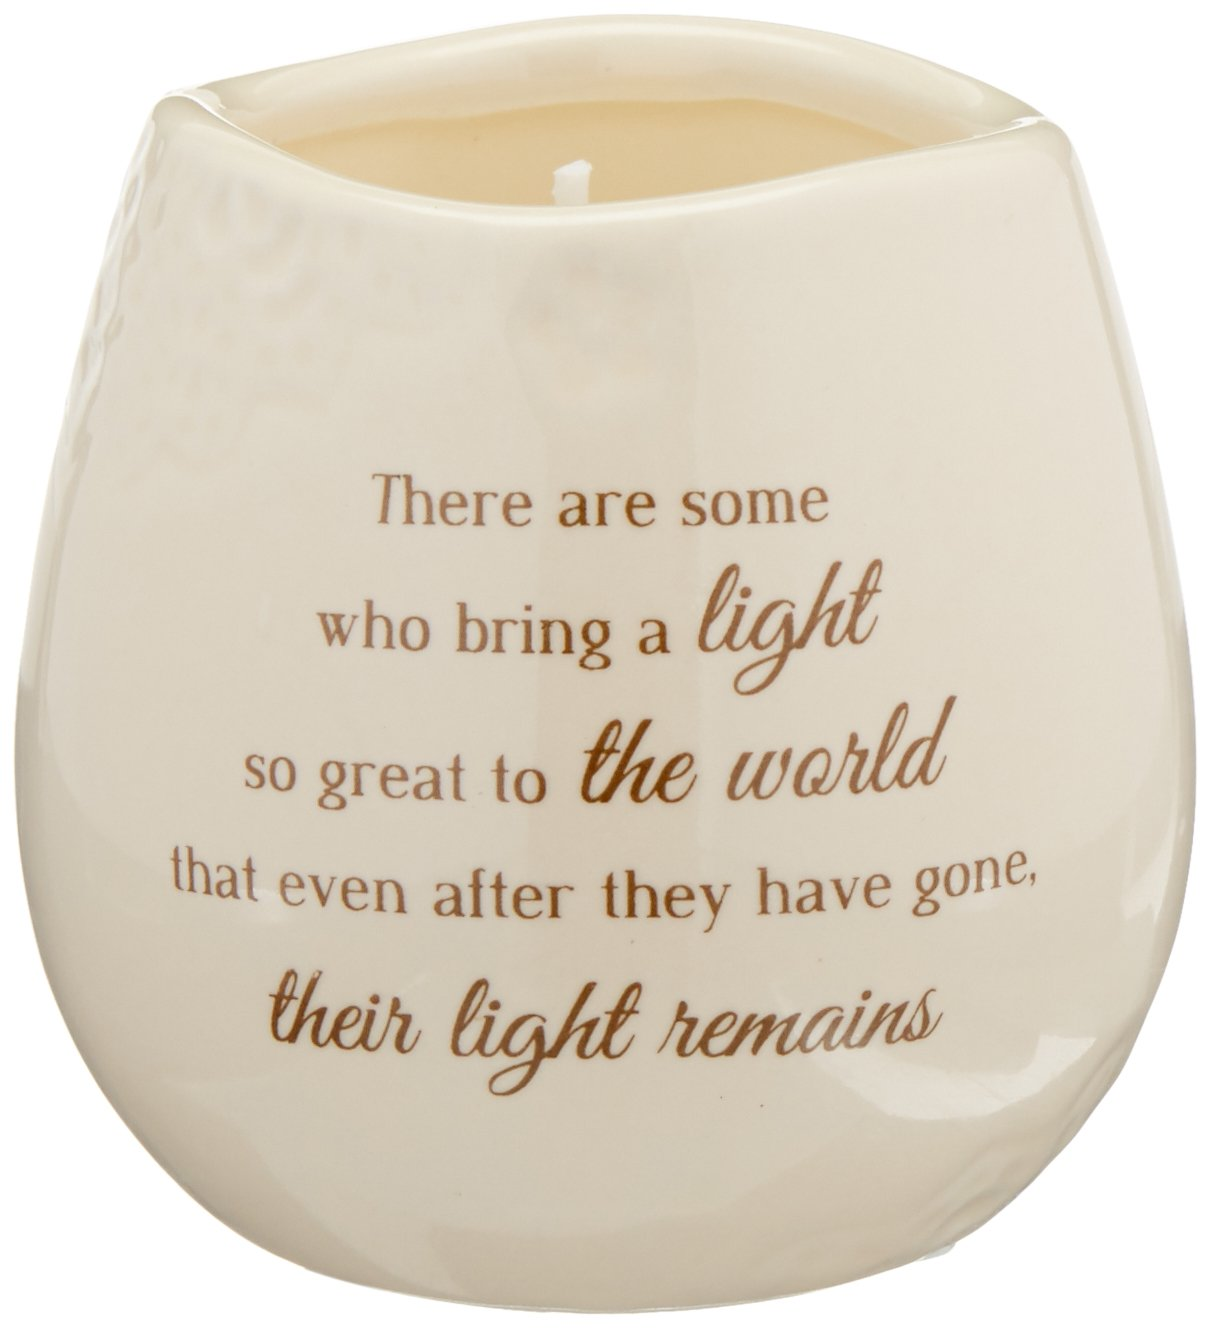 Light Your Way Memorial 19176 Remains Ceramic Soy Wax Candle Pavilion Gift Company